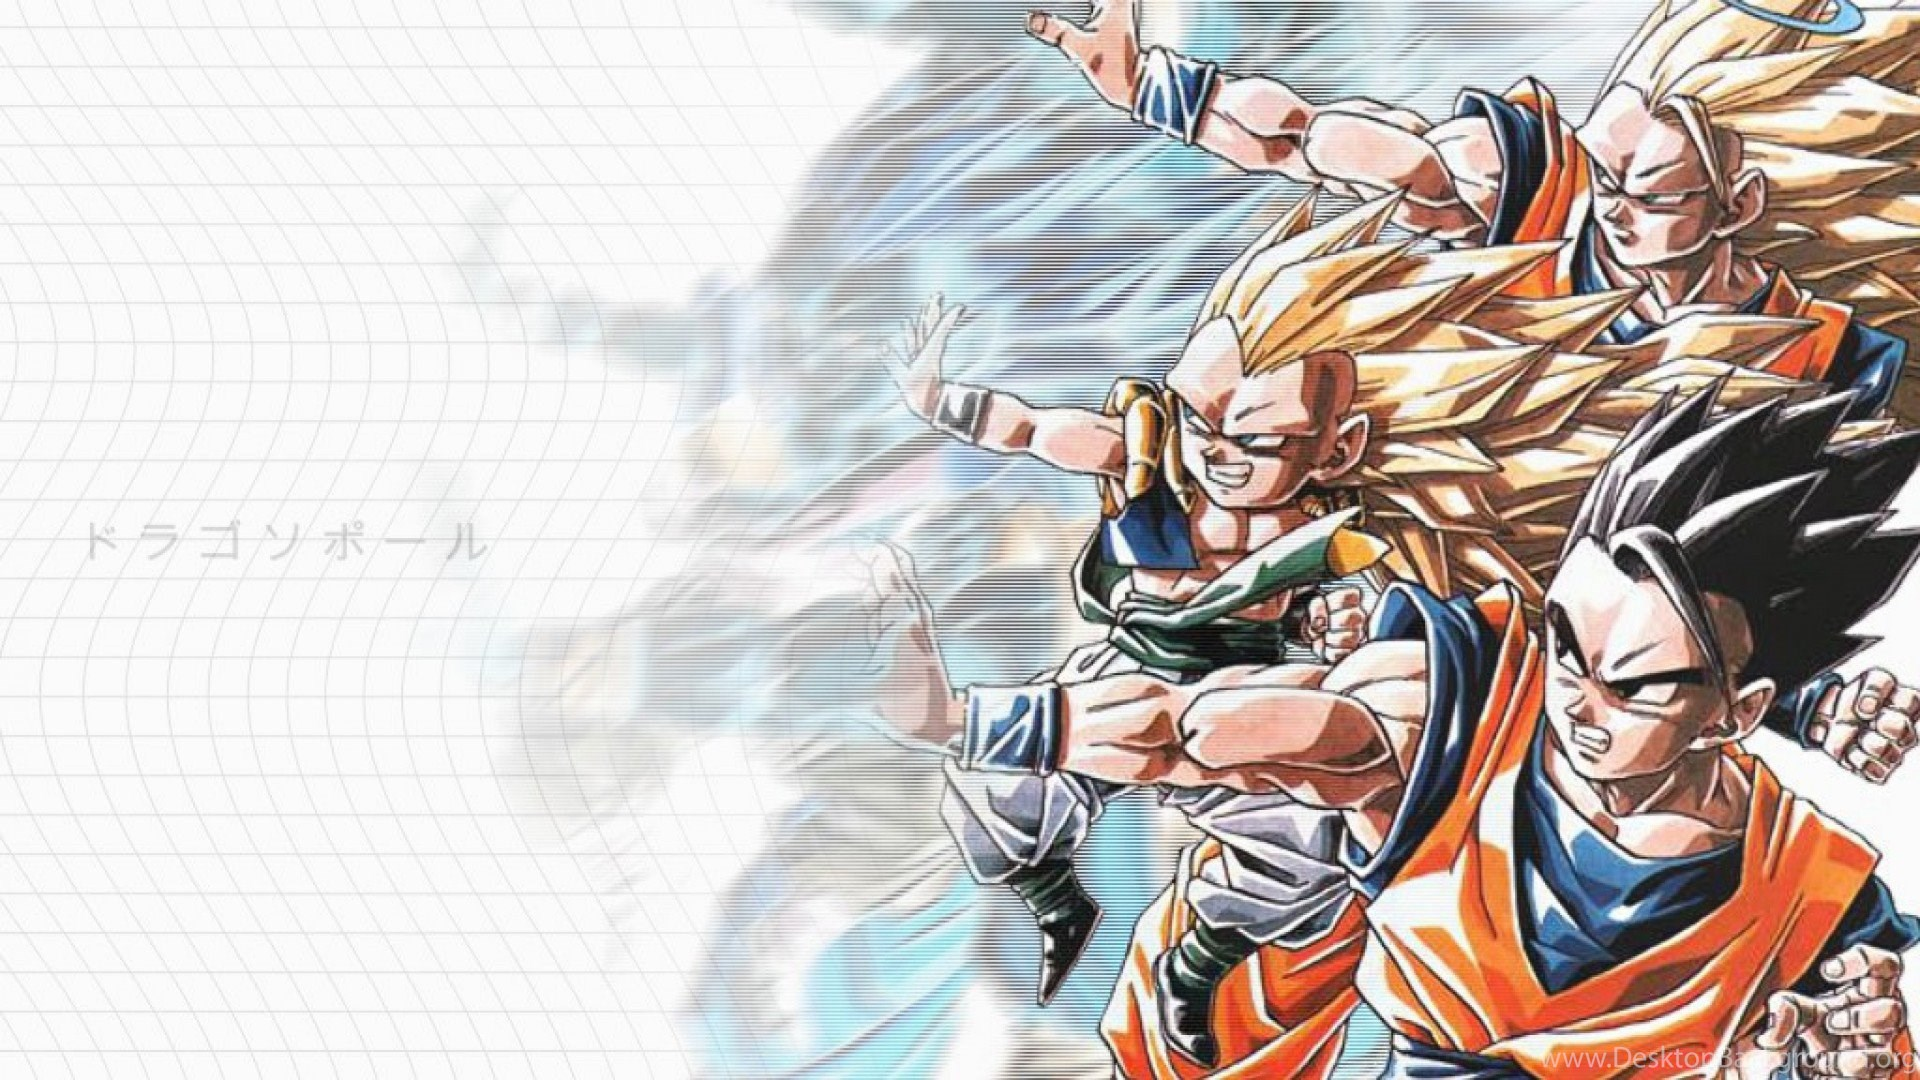 Dragon Ball Z Hd Wallpapers Collection 33 Desktop Background